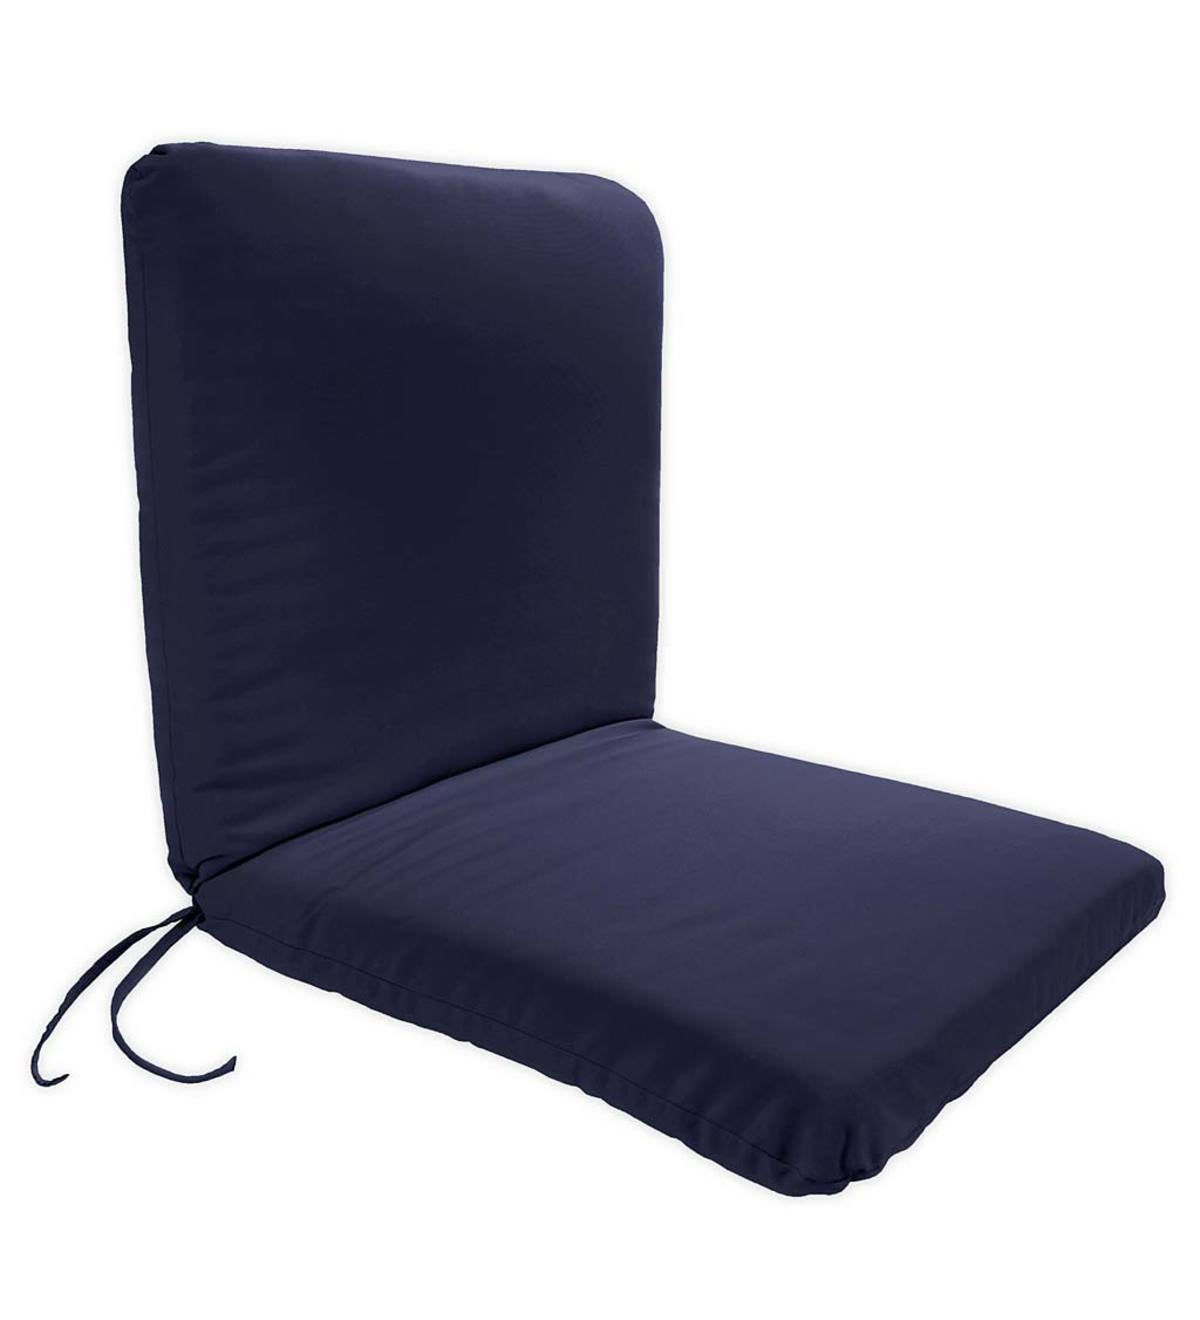 Polyester Hinged Classic Chair Cushion With Ties - Solid Navy